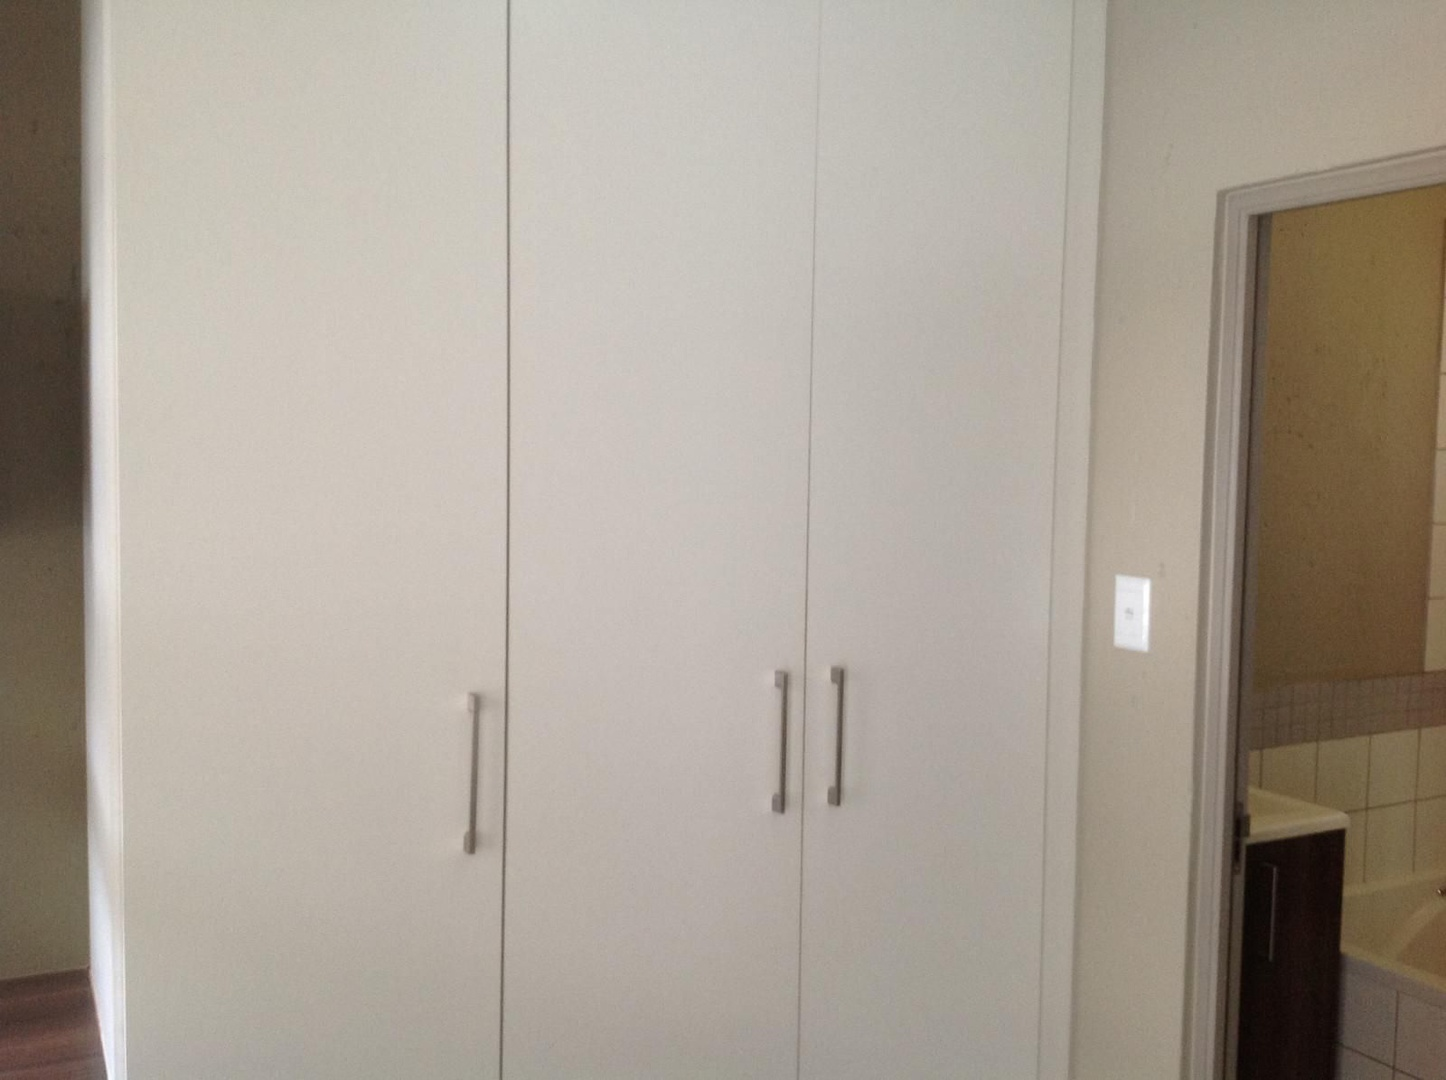 Apartment in Bult - image (39).jfif